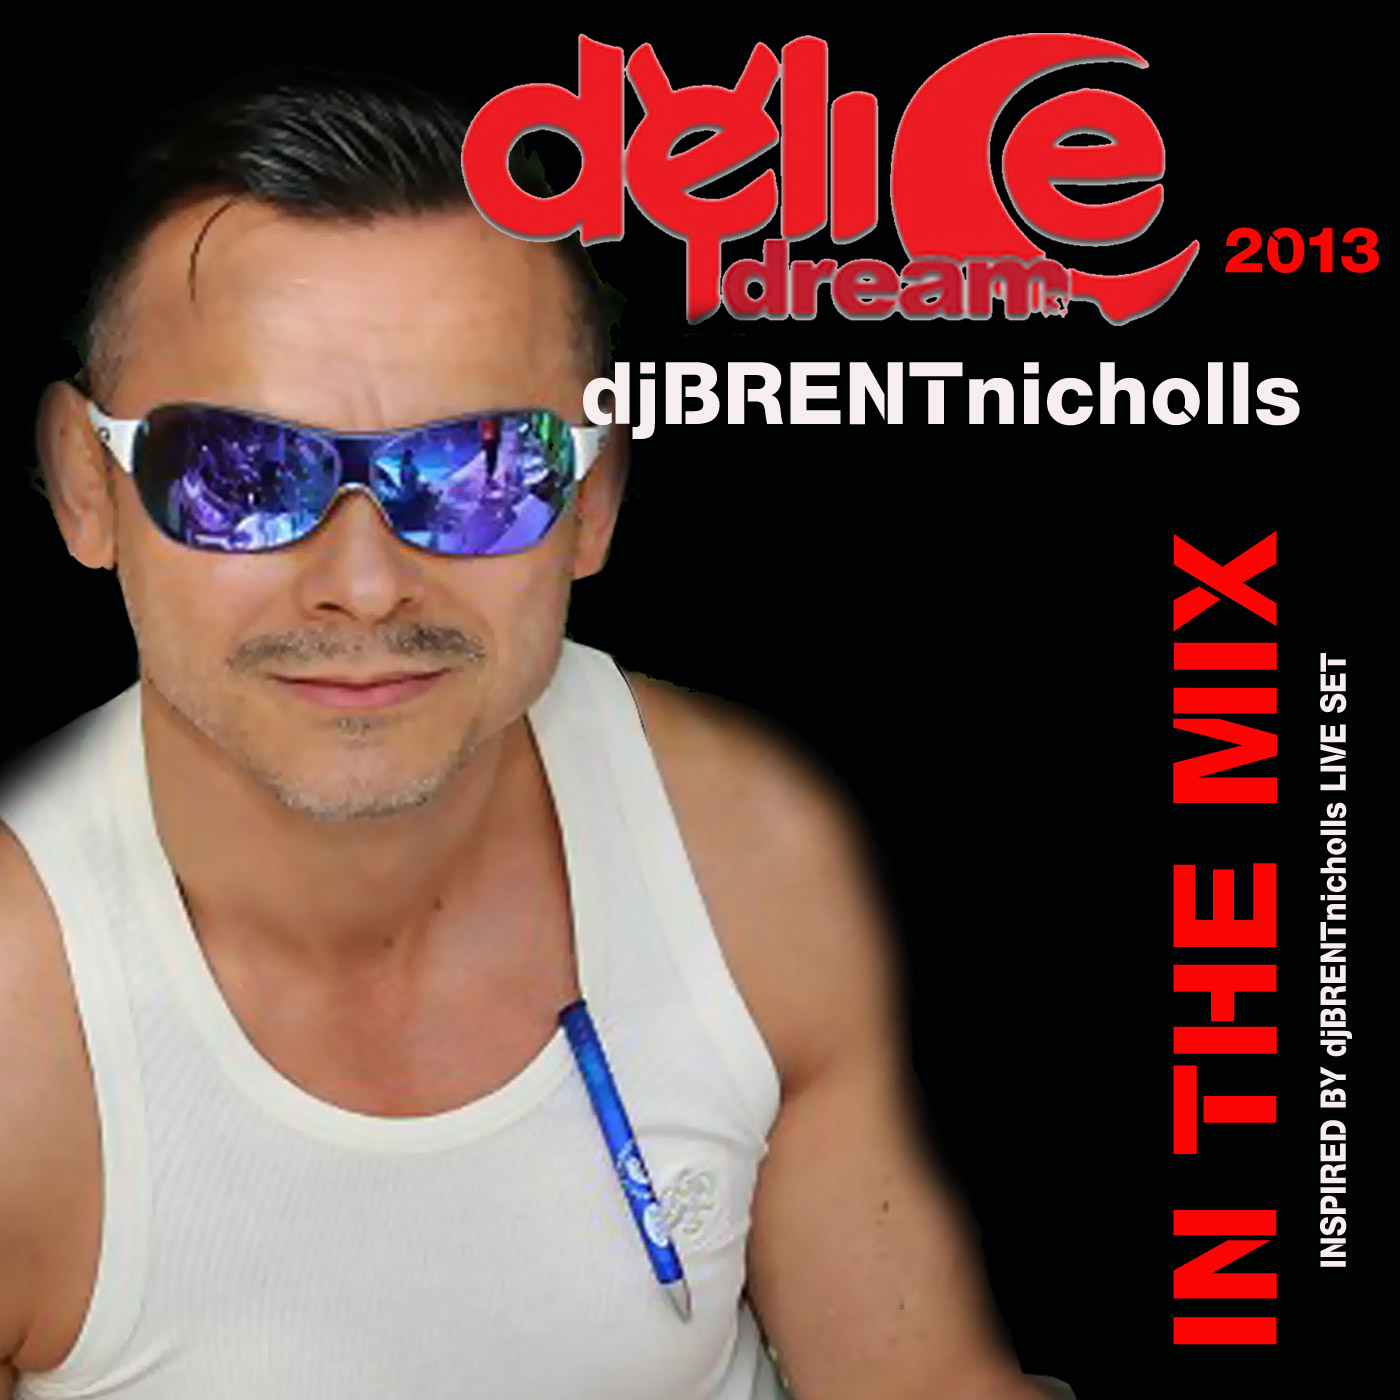 IN THE MIX: DELICE DREAM 2013